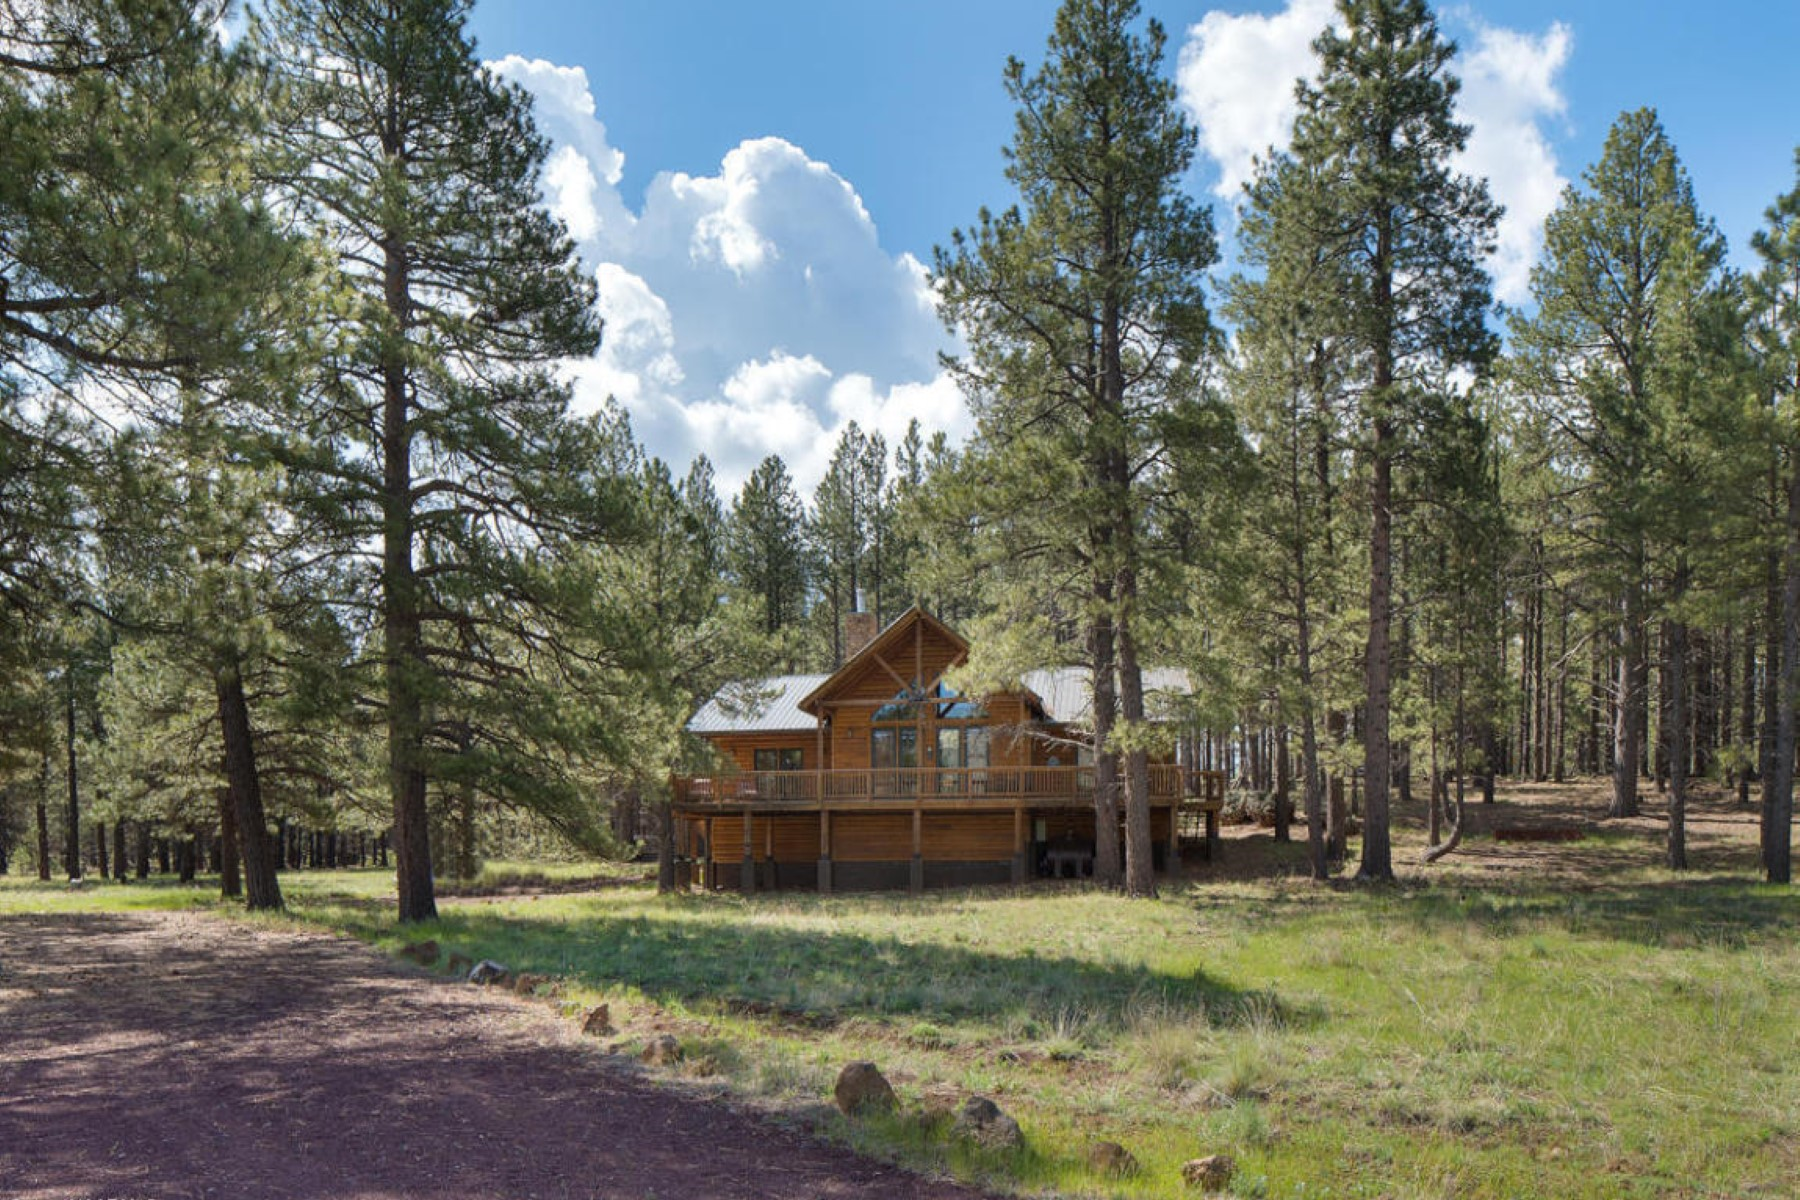 一戸建て のために 売買 アット This is a rare opportunity to own a private custom log sided mountain retreat. 17242 Crowley TRL Flagstaff, アリゾナ 86001 アメリカ合衆国